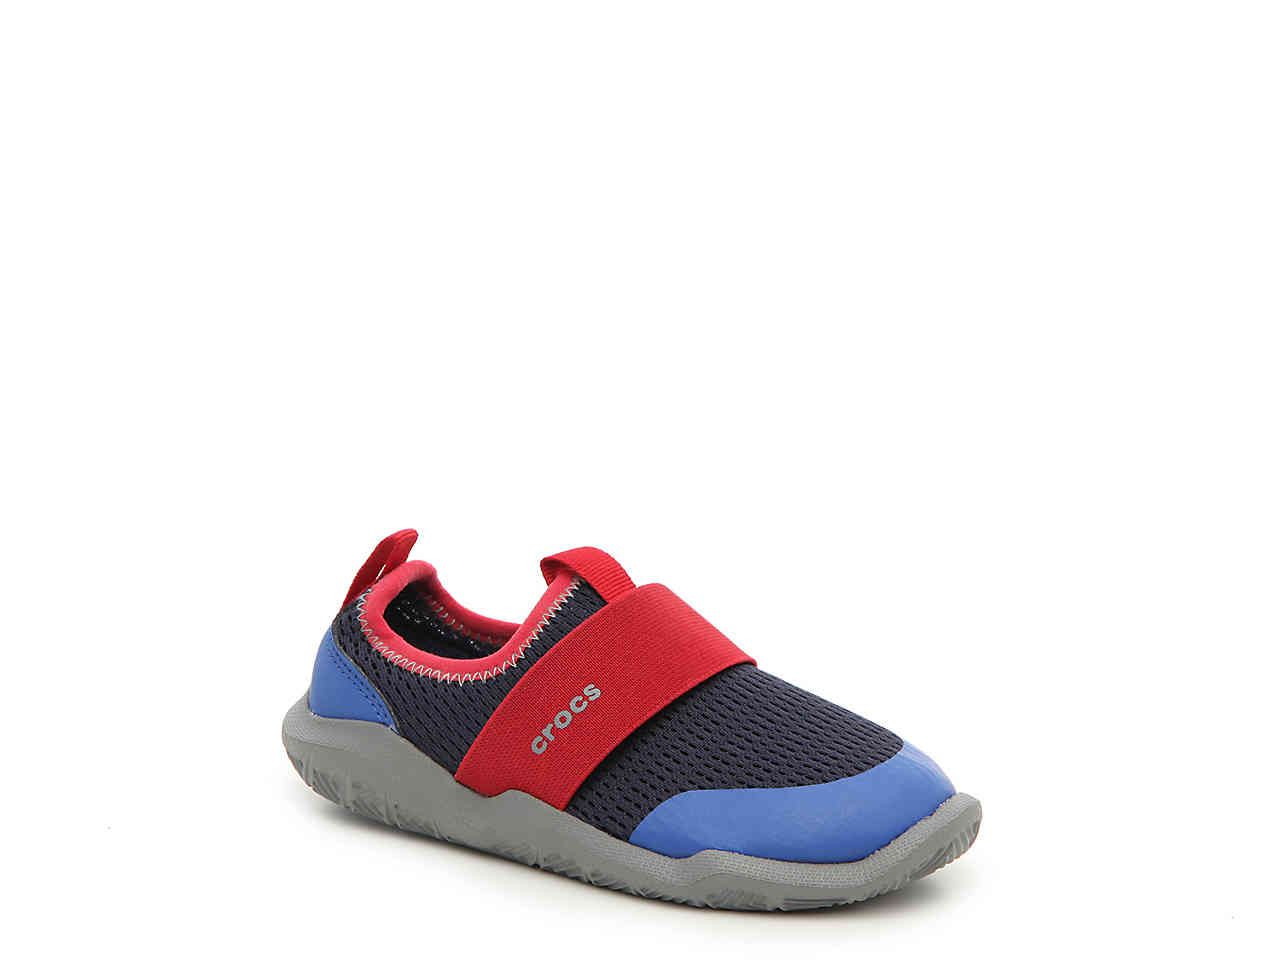 1675d60969b8 Swiftwater Easy-On Toddler   Youth Water Shoe